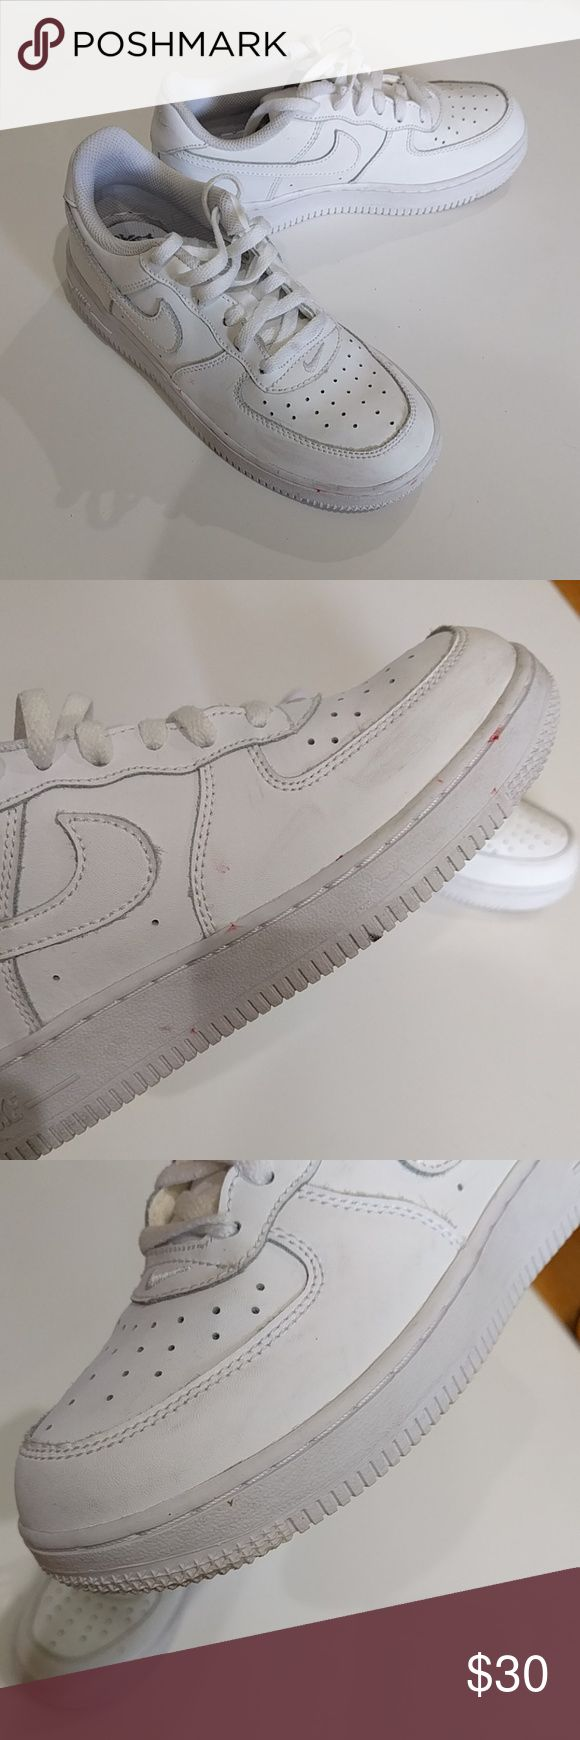 Nike air Force 1 (boys) White on white air force 1 mids. There are a few scuffs and some red markings on the side of the sole, but overall in great shape (considering these are boys shoes and they are all white). Nike Shoes Sneakers